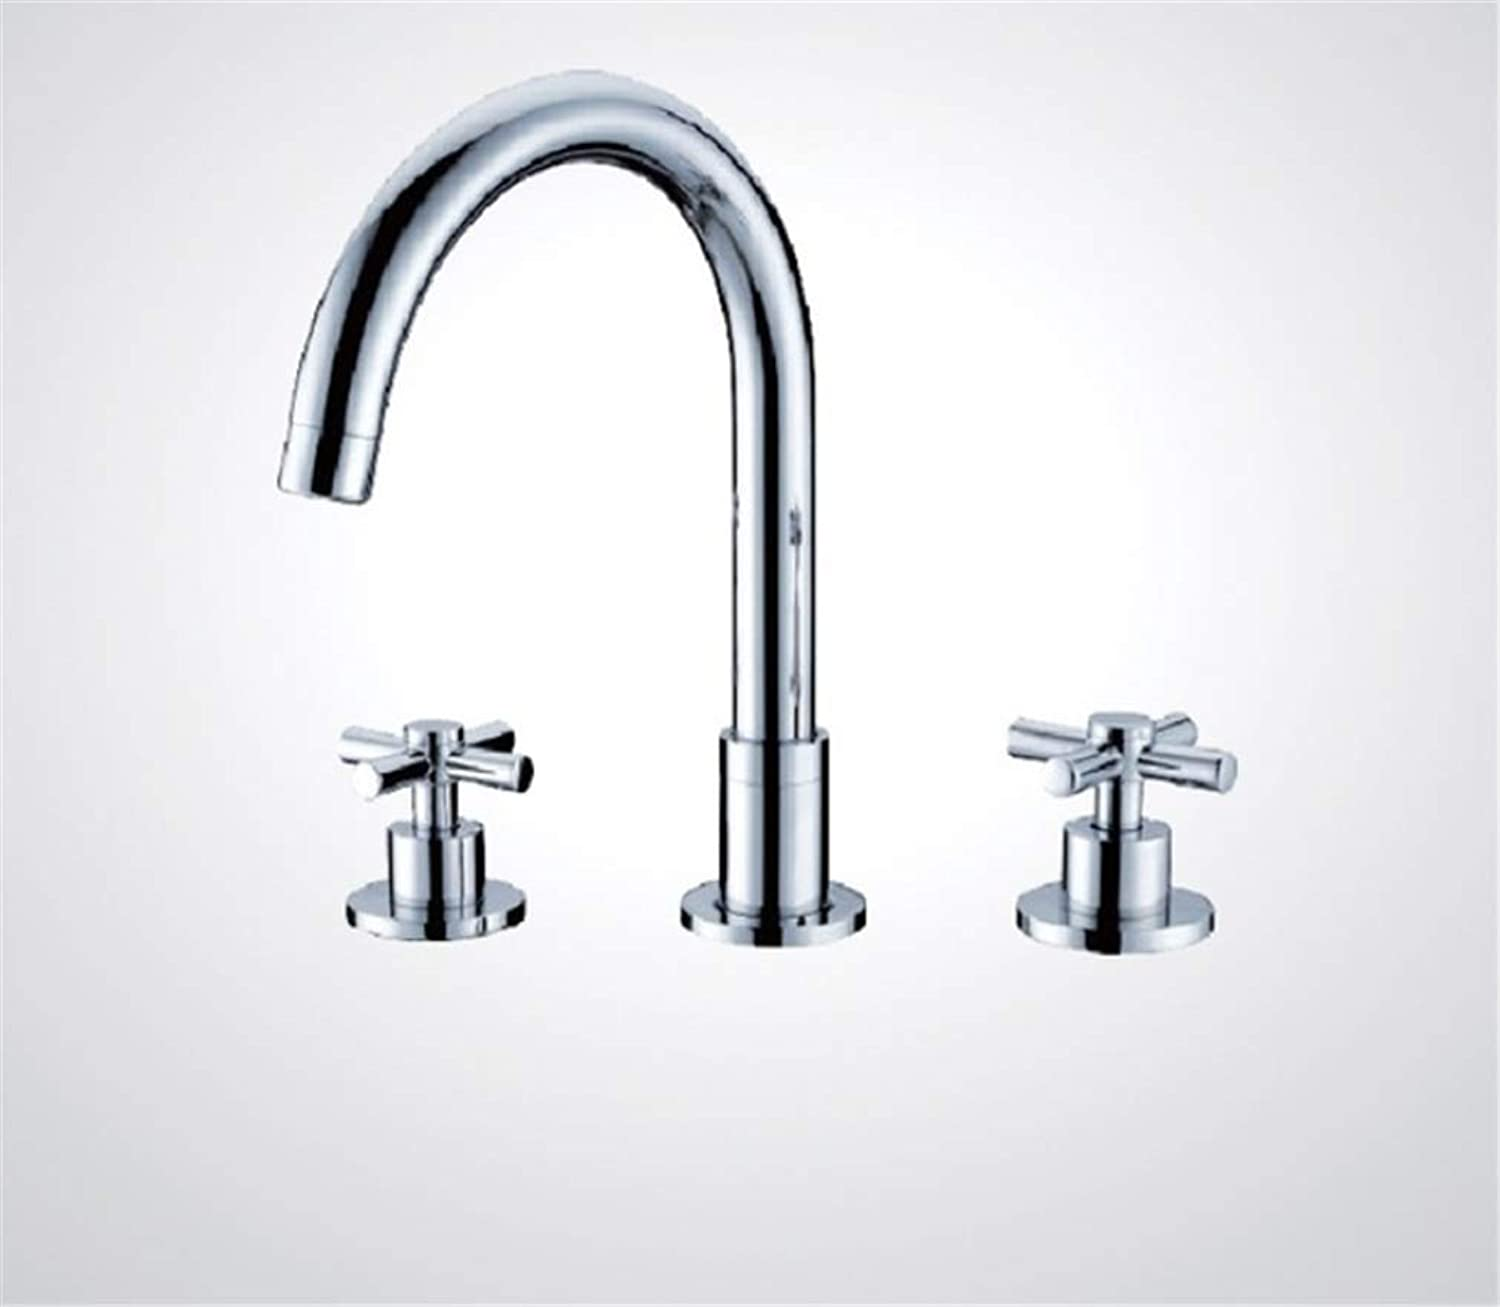 Taps Kitchen Basin Mixer Pull Out Mixerwash Basin Sink Vessel Chrome 3 Pieces Waterfall Spout Two Hot Cold Handle+Hose Deck Mount Bathtub Tap Mixer Faucet